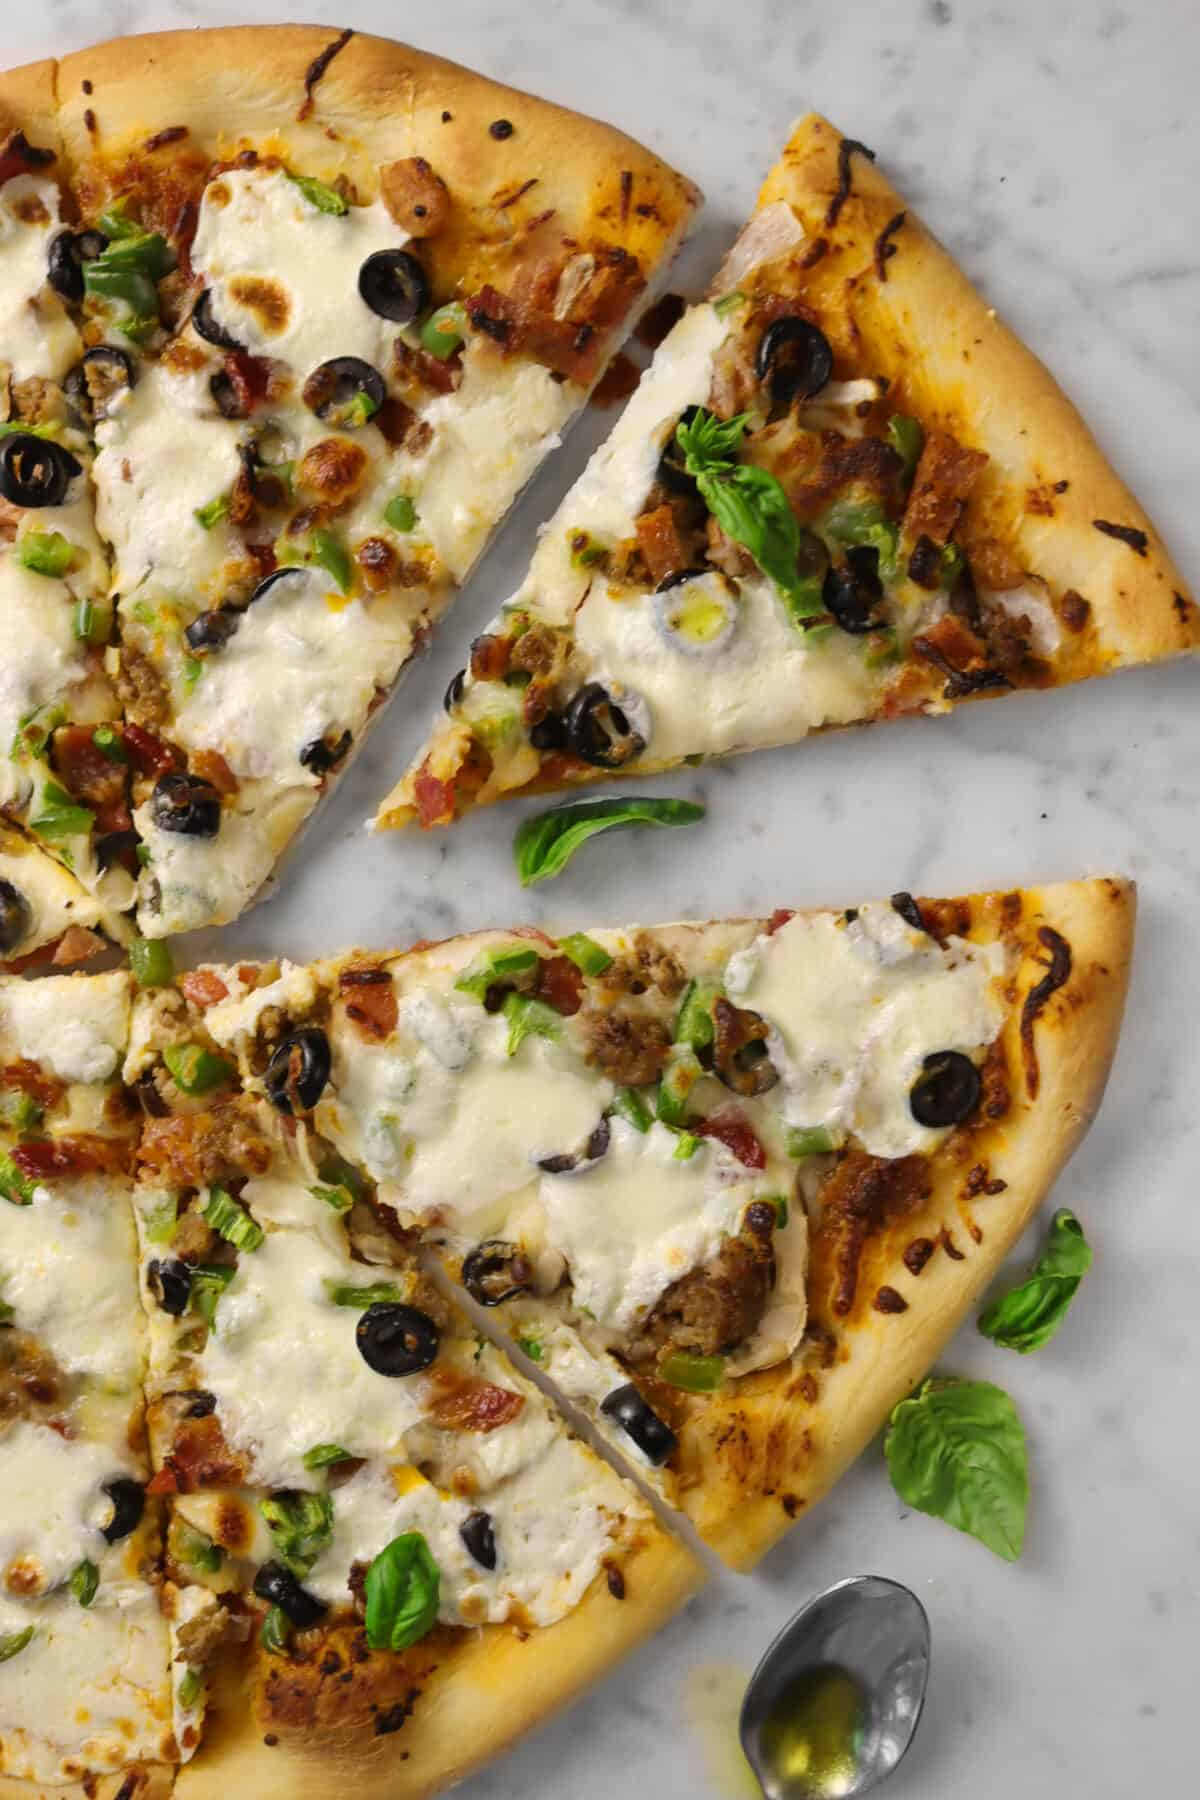 over head shot of supreme pizza with only four pieces showing, one of which is pulled away on a marble counter with four basil leaves and a silver spoon